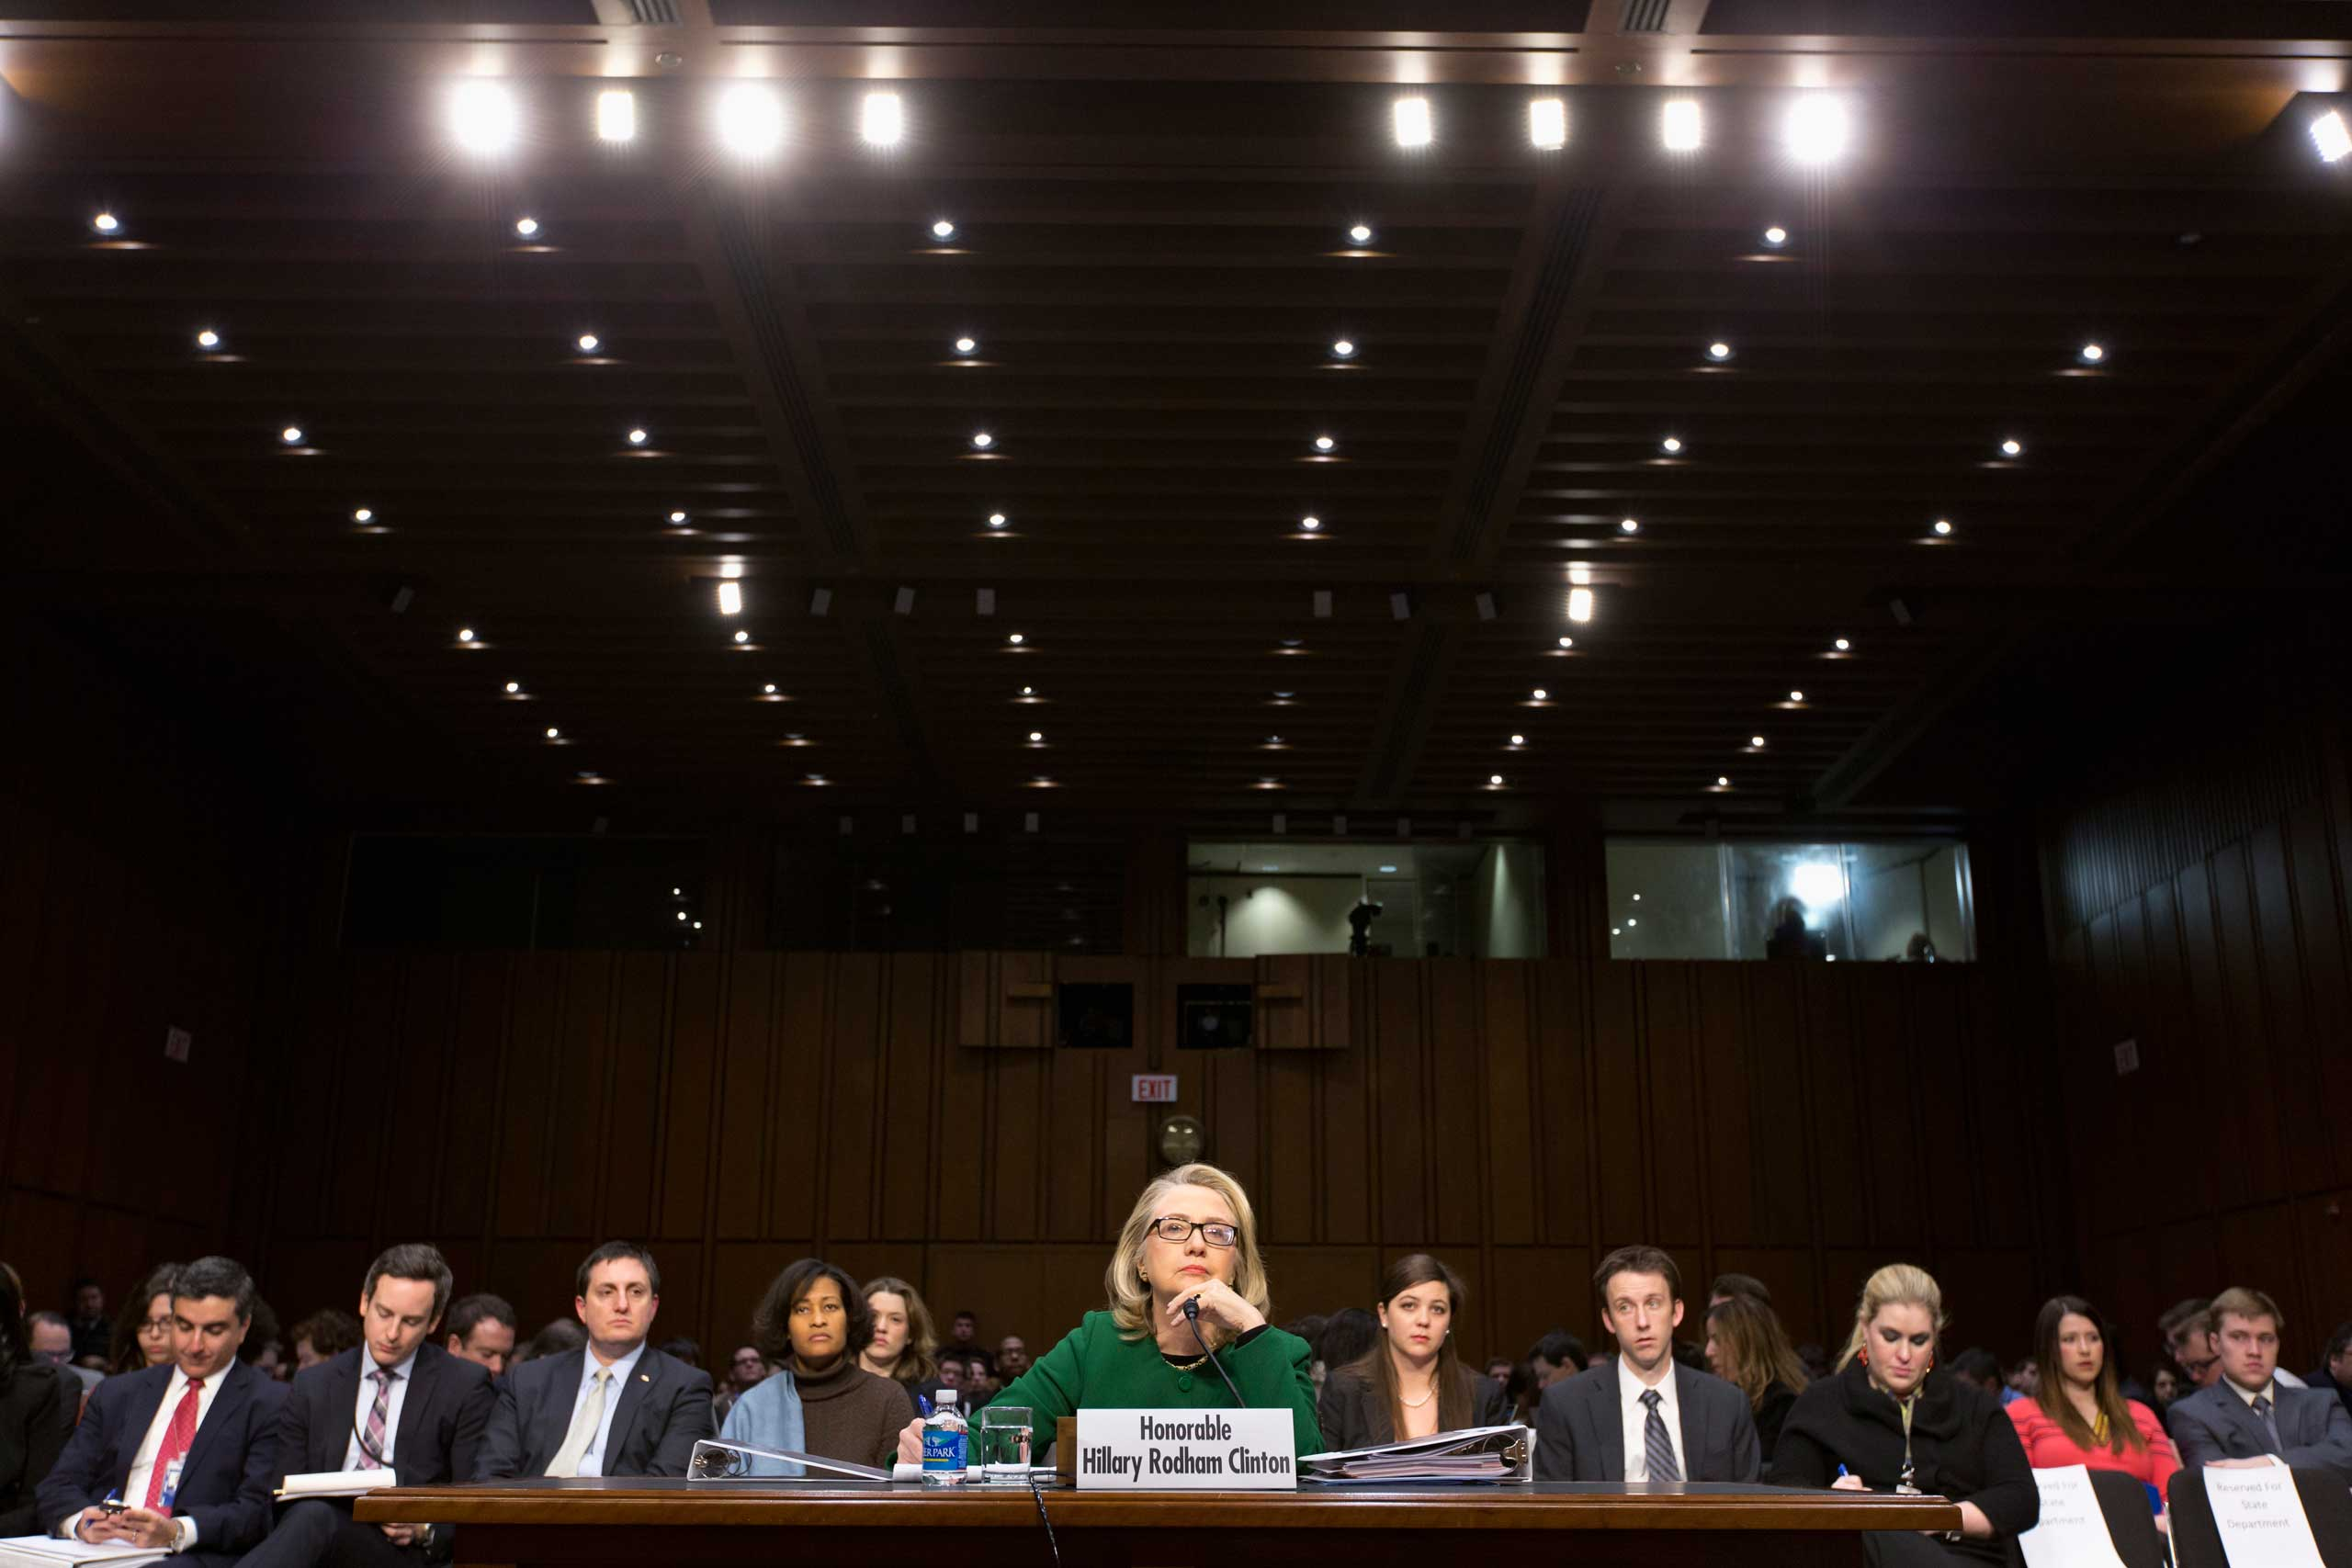 <b>Witness:</b> Clinton testifies before the Senate Foreign Relations Committee hearing on the deadly attack on the U.S. diplomatic mission in Benghazi, Libya, on Jan. 23, 2013.